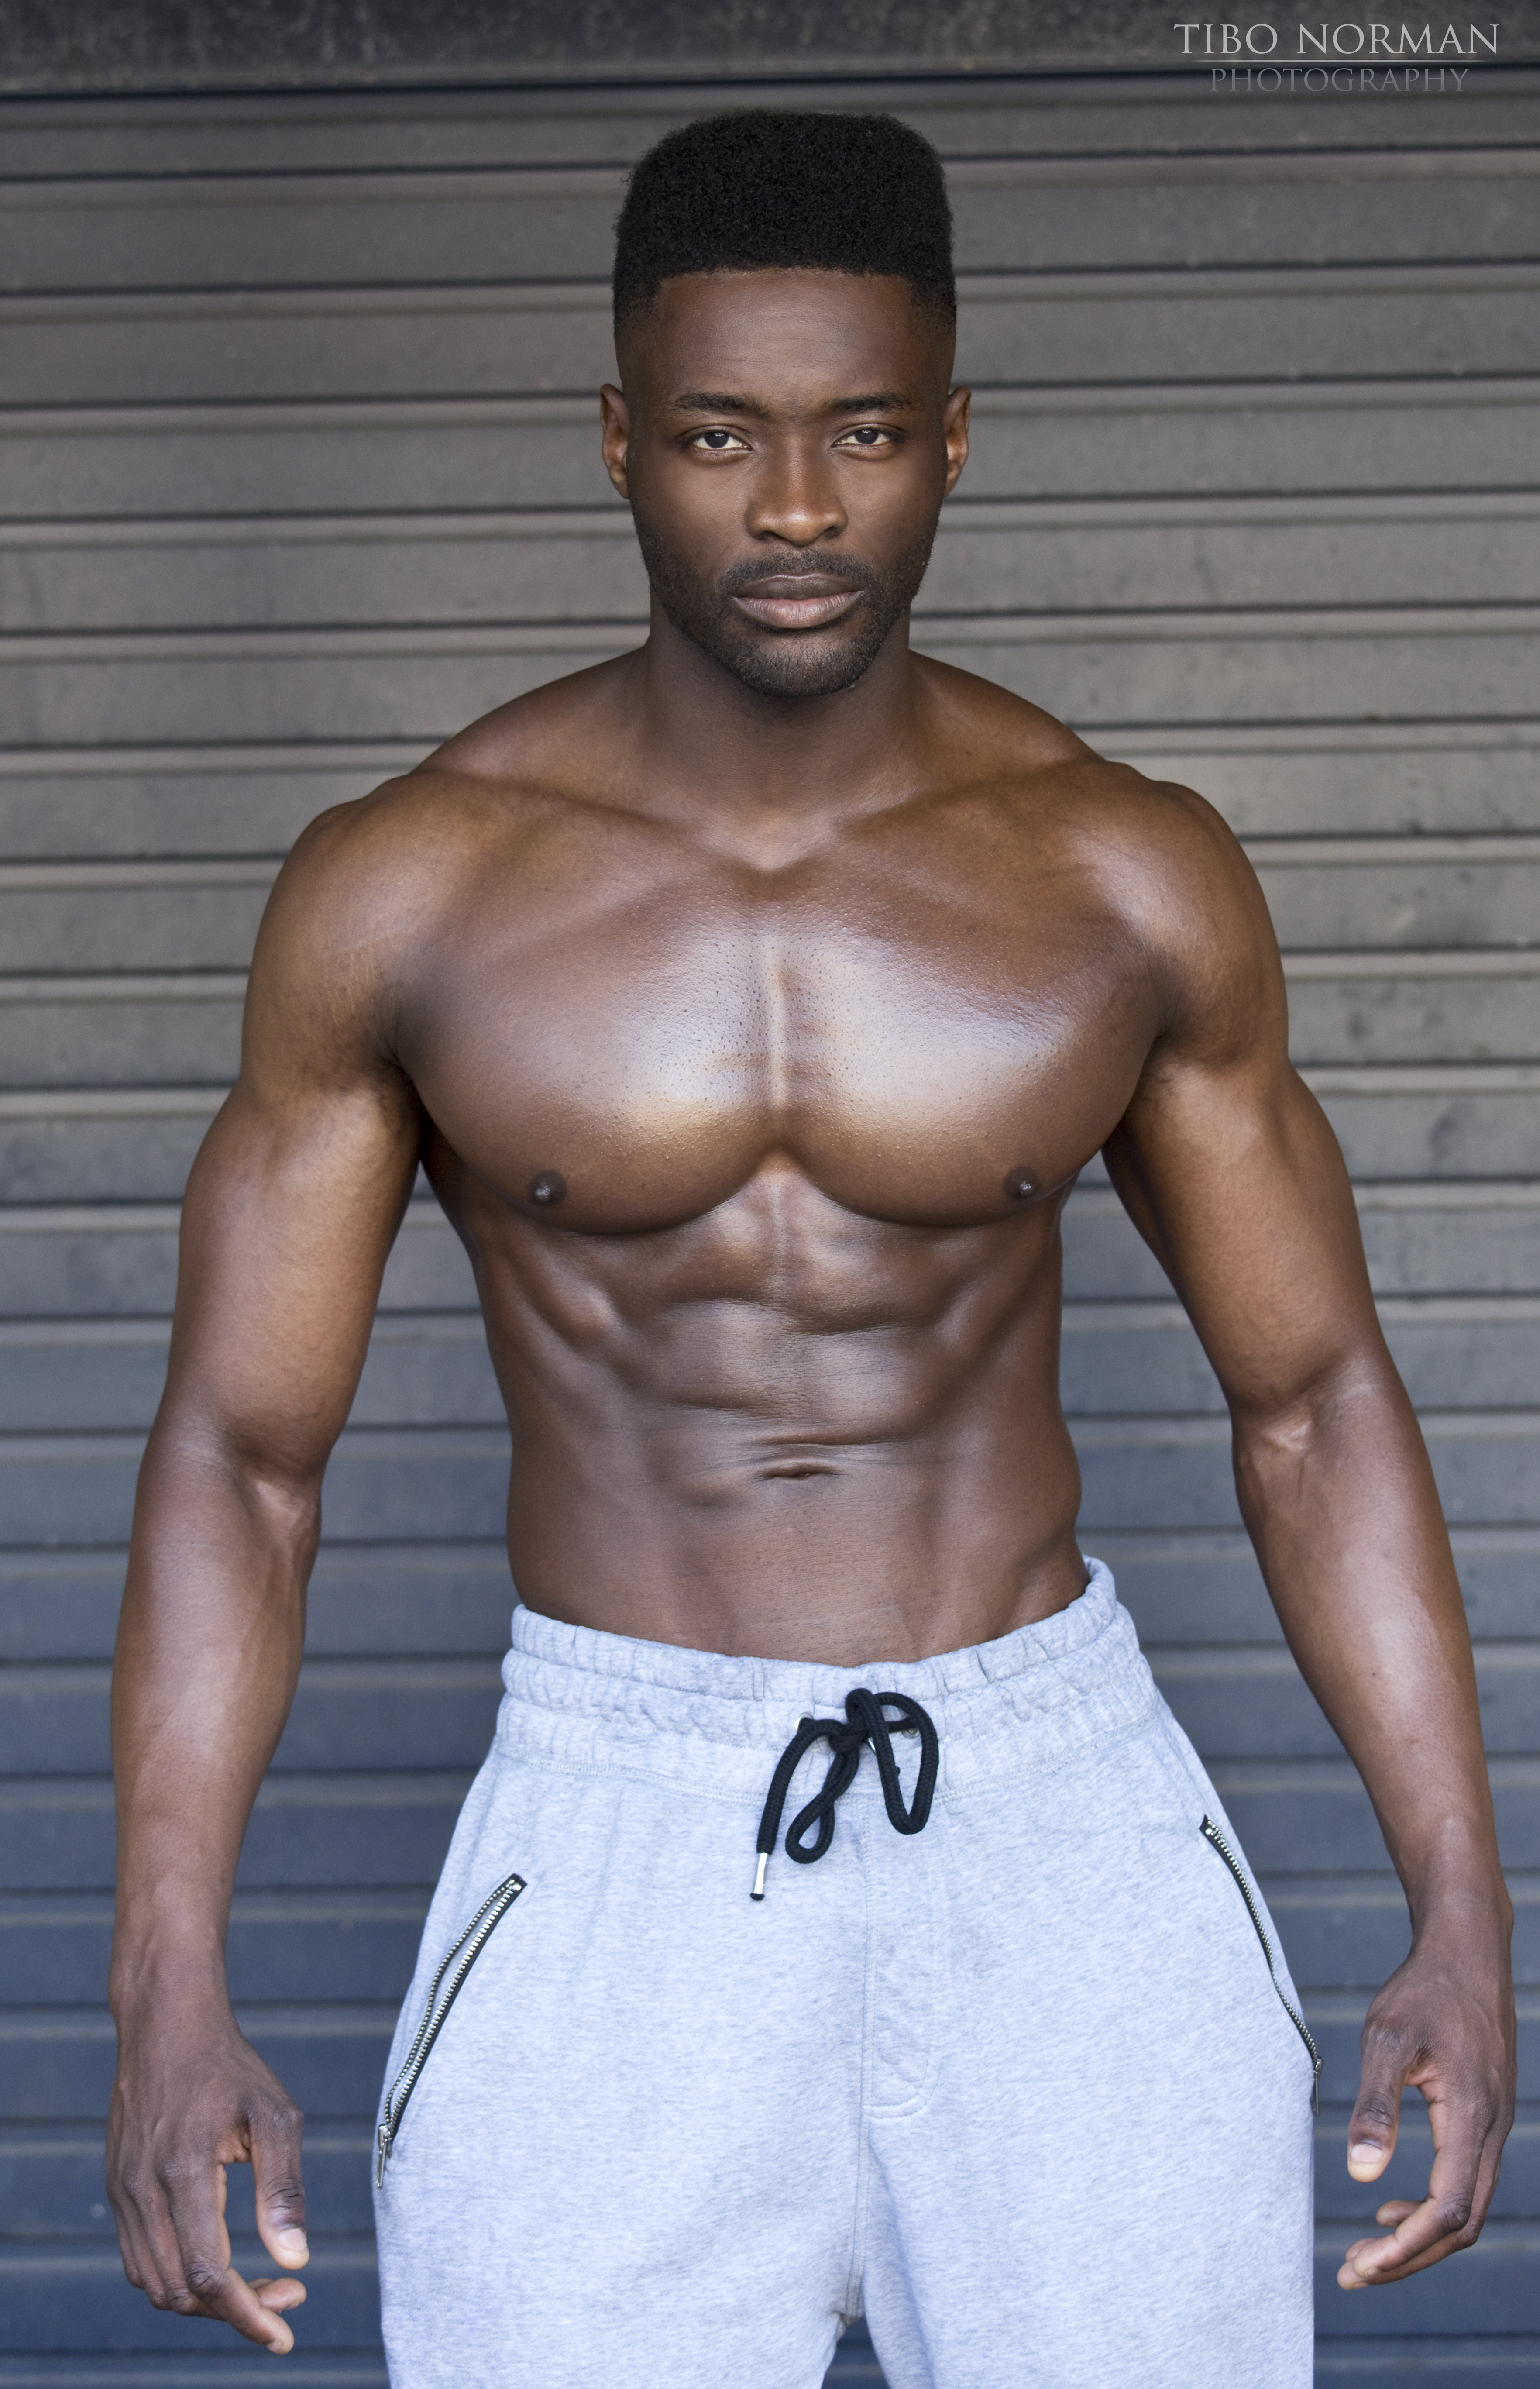 Fitness Models On Instagram Overtaking Celebrities As Role: Timothy, RIPPED Model And Fitness Model